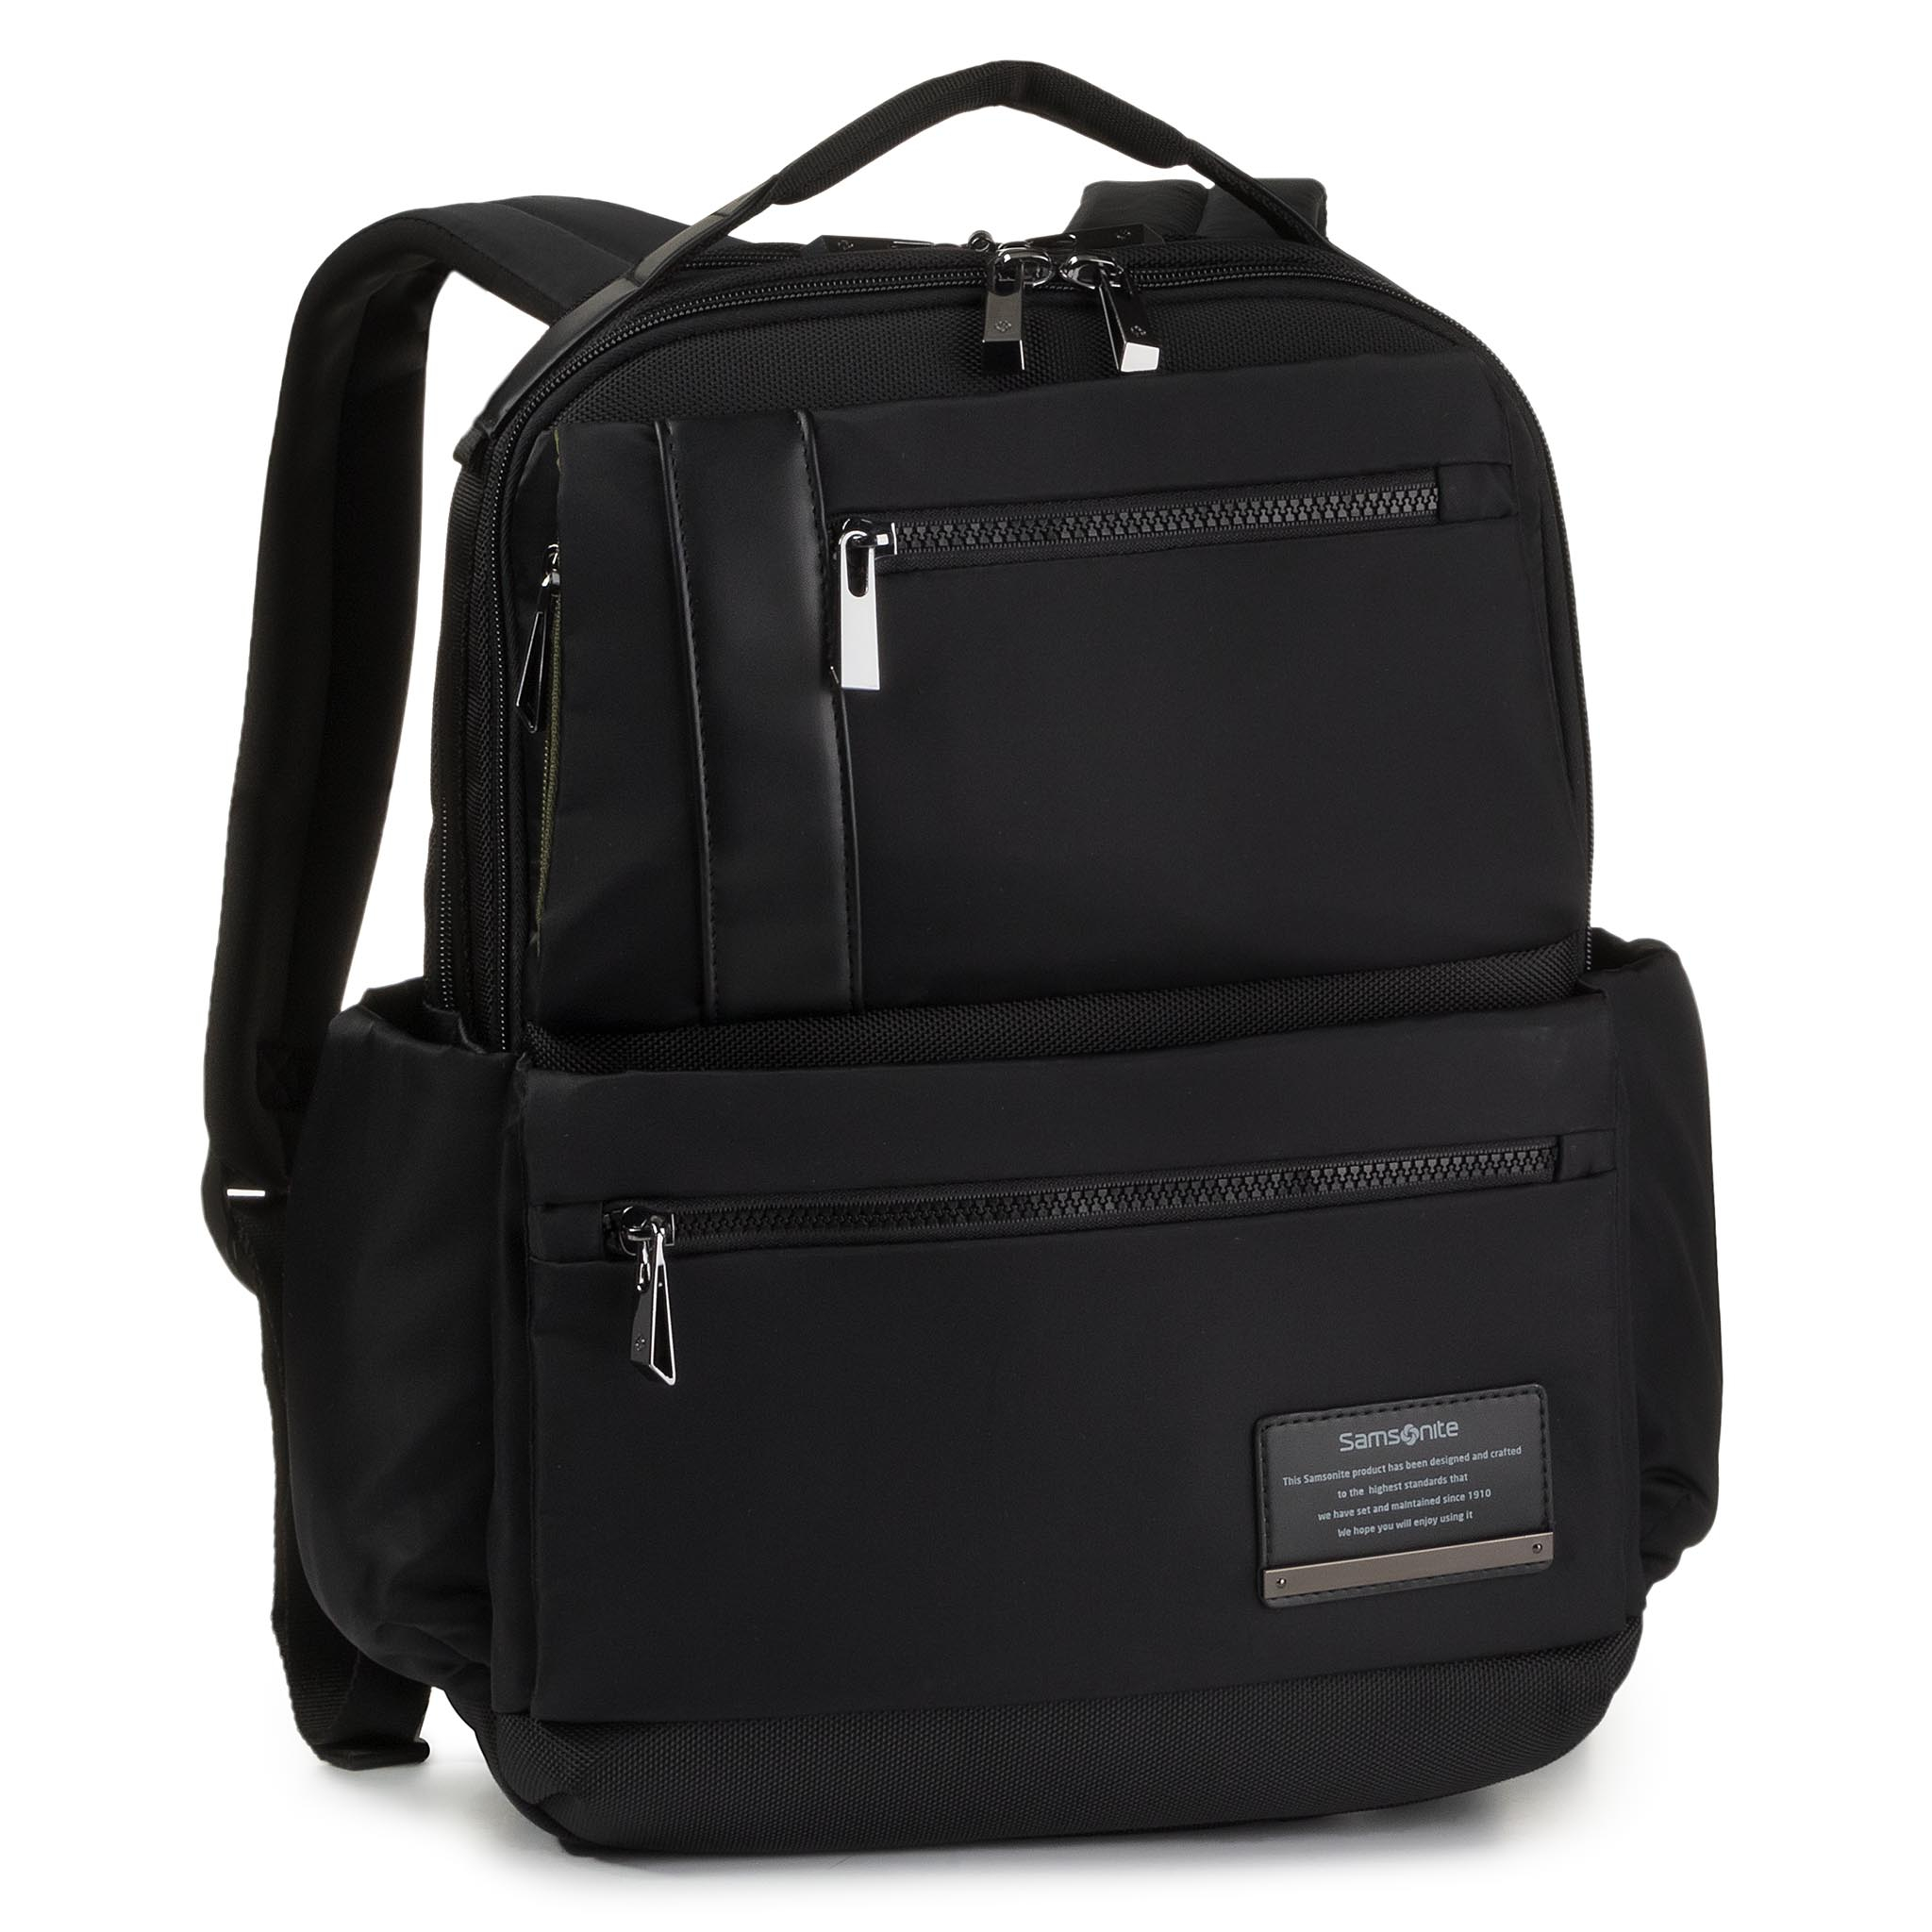 Rucsac SAMSONITE - Laptop Backpack 77707-1465-1CNU Jet Black